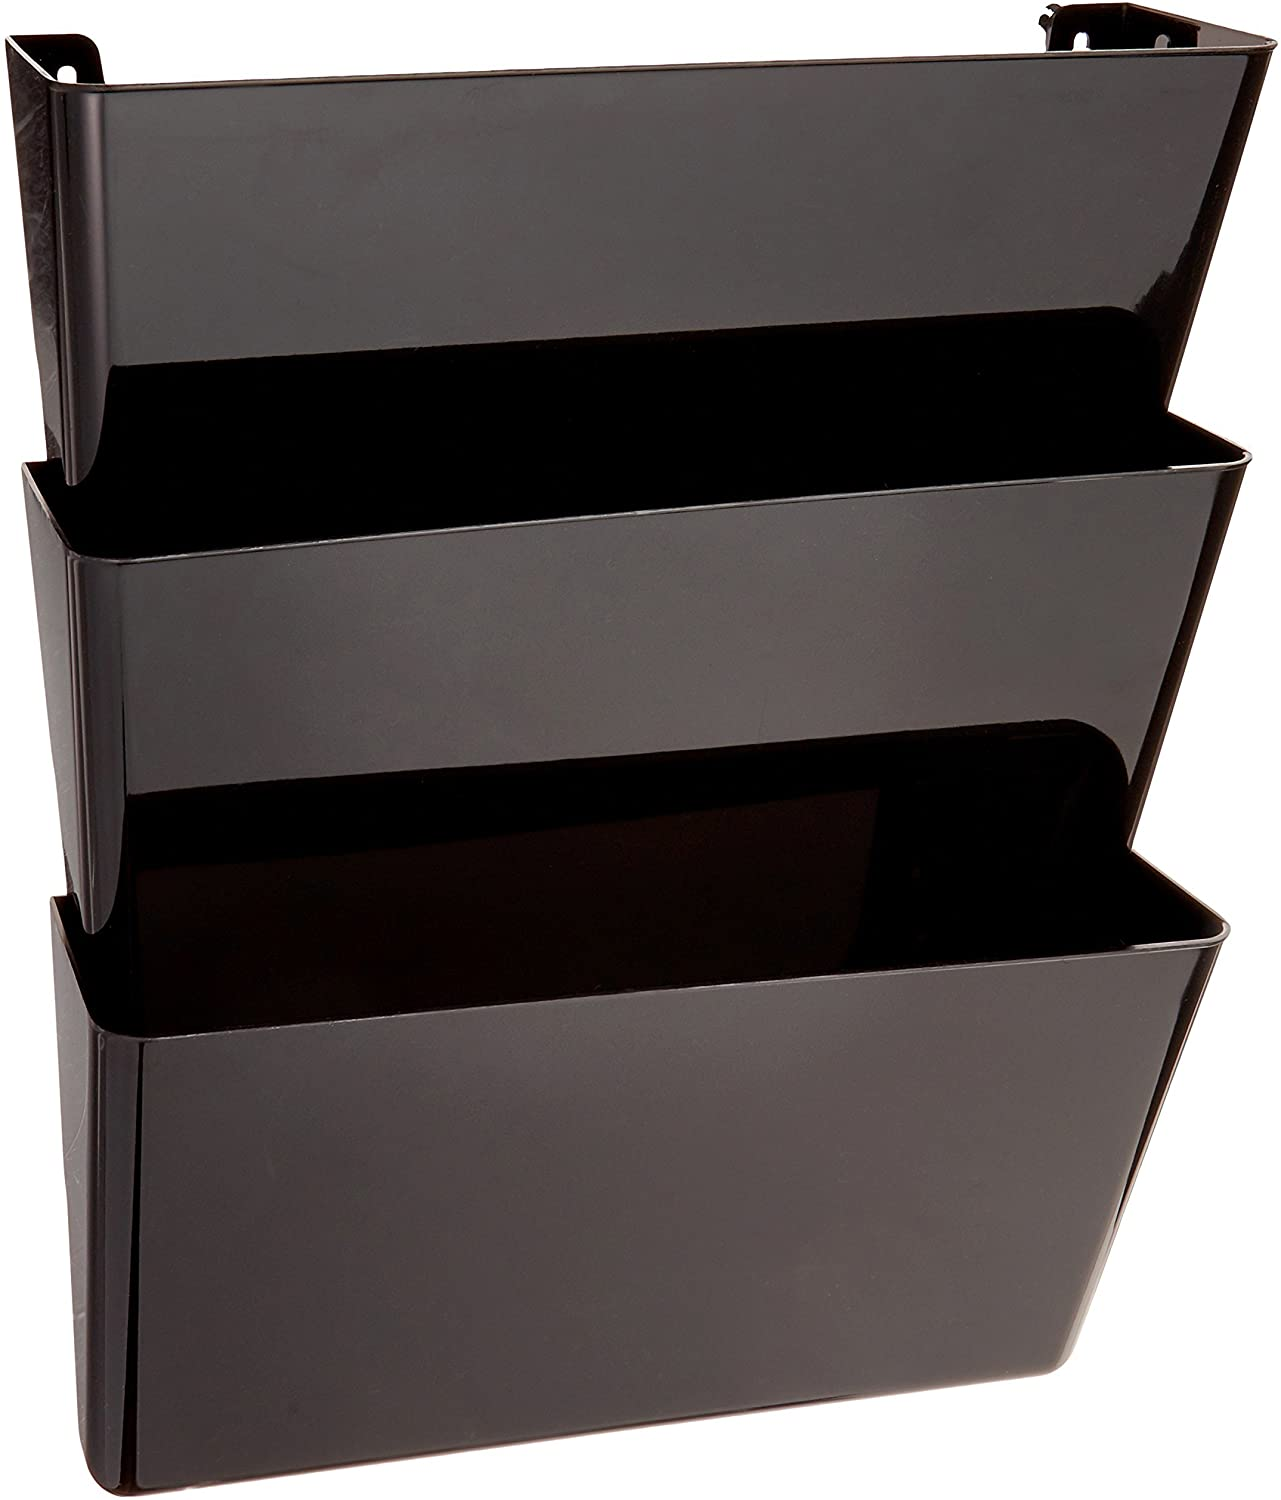 Deflecto 93604 Sustainable Office Docupocket Recycled Content Wall File Organizer Stackable Letter Size Black Set Of 3 13 W X 7 H X 4 D Amazon Ca Office Products